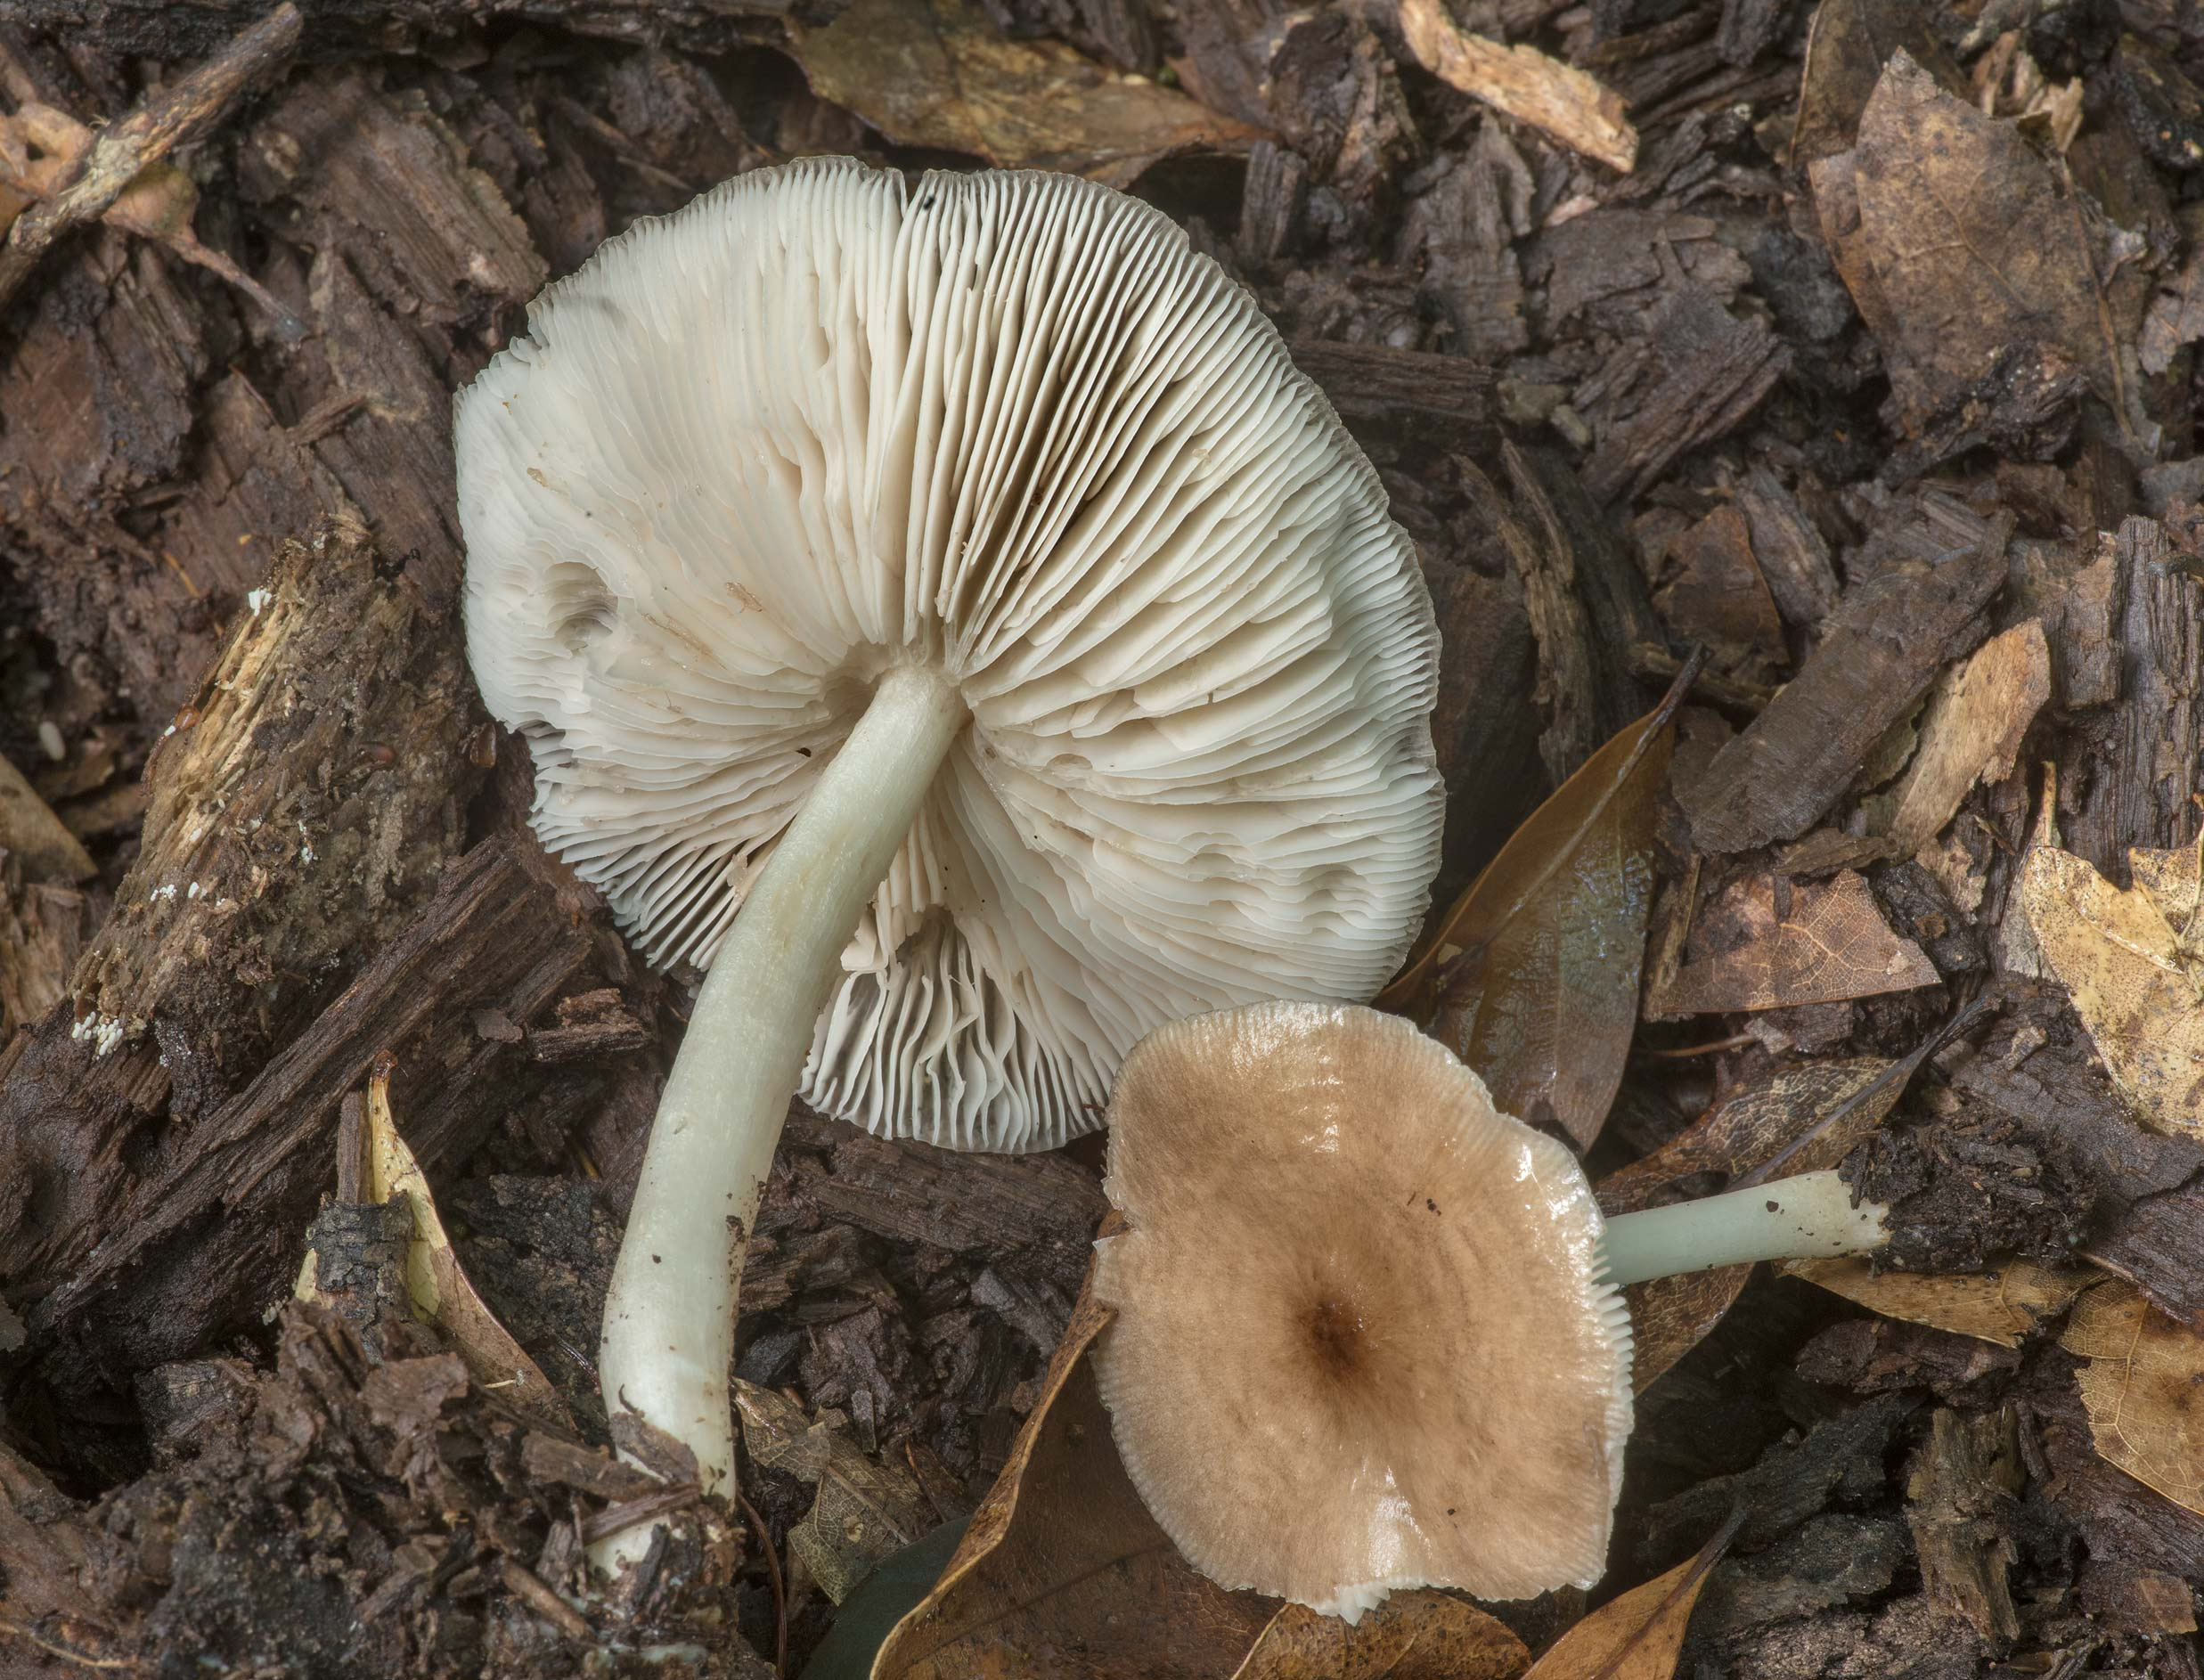 Underside of deer shield mushrooms (Pluteus...Creek Park. College Station, Texas